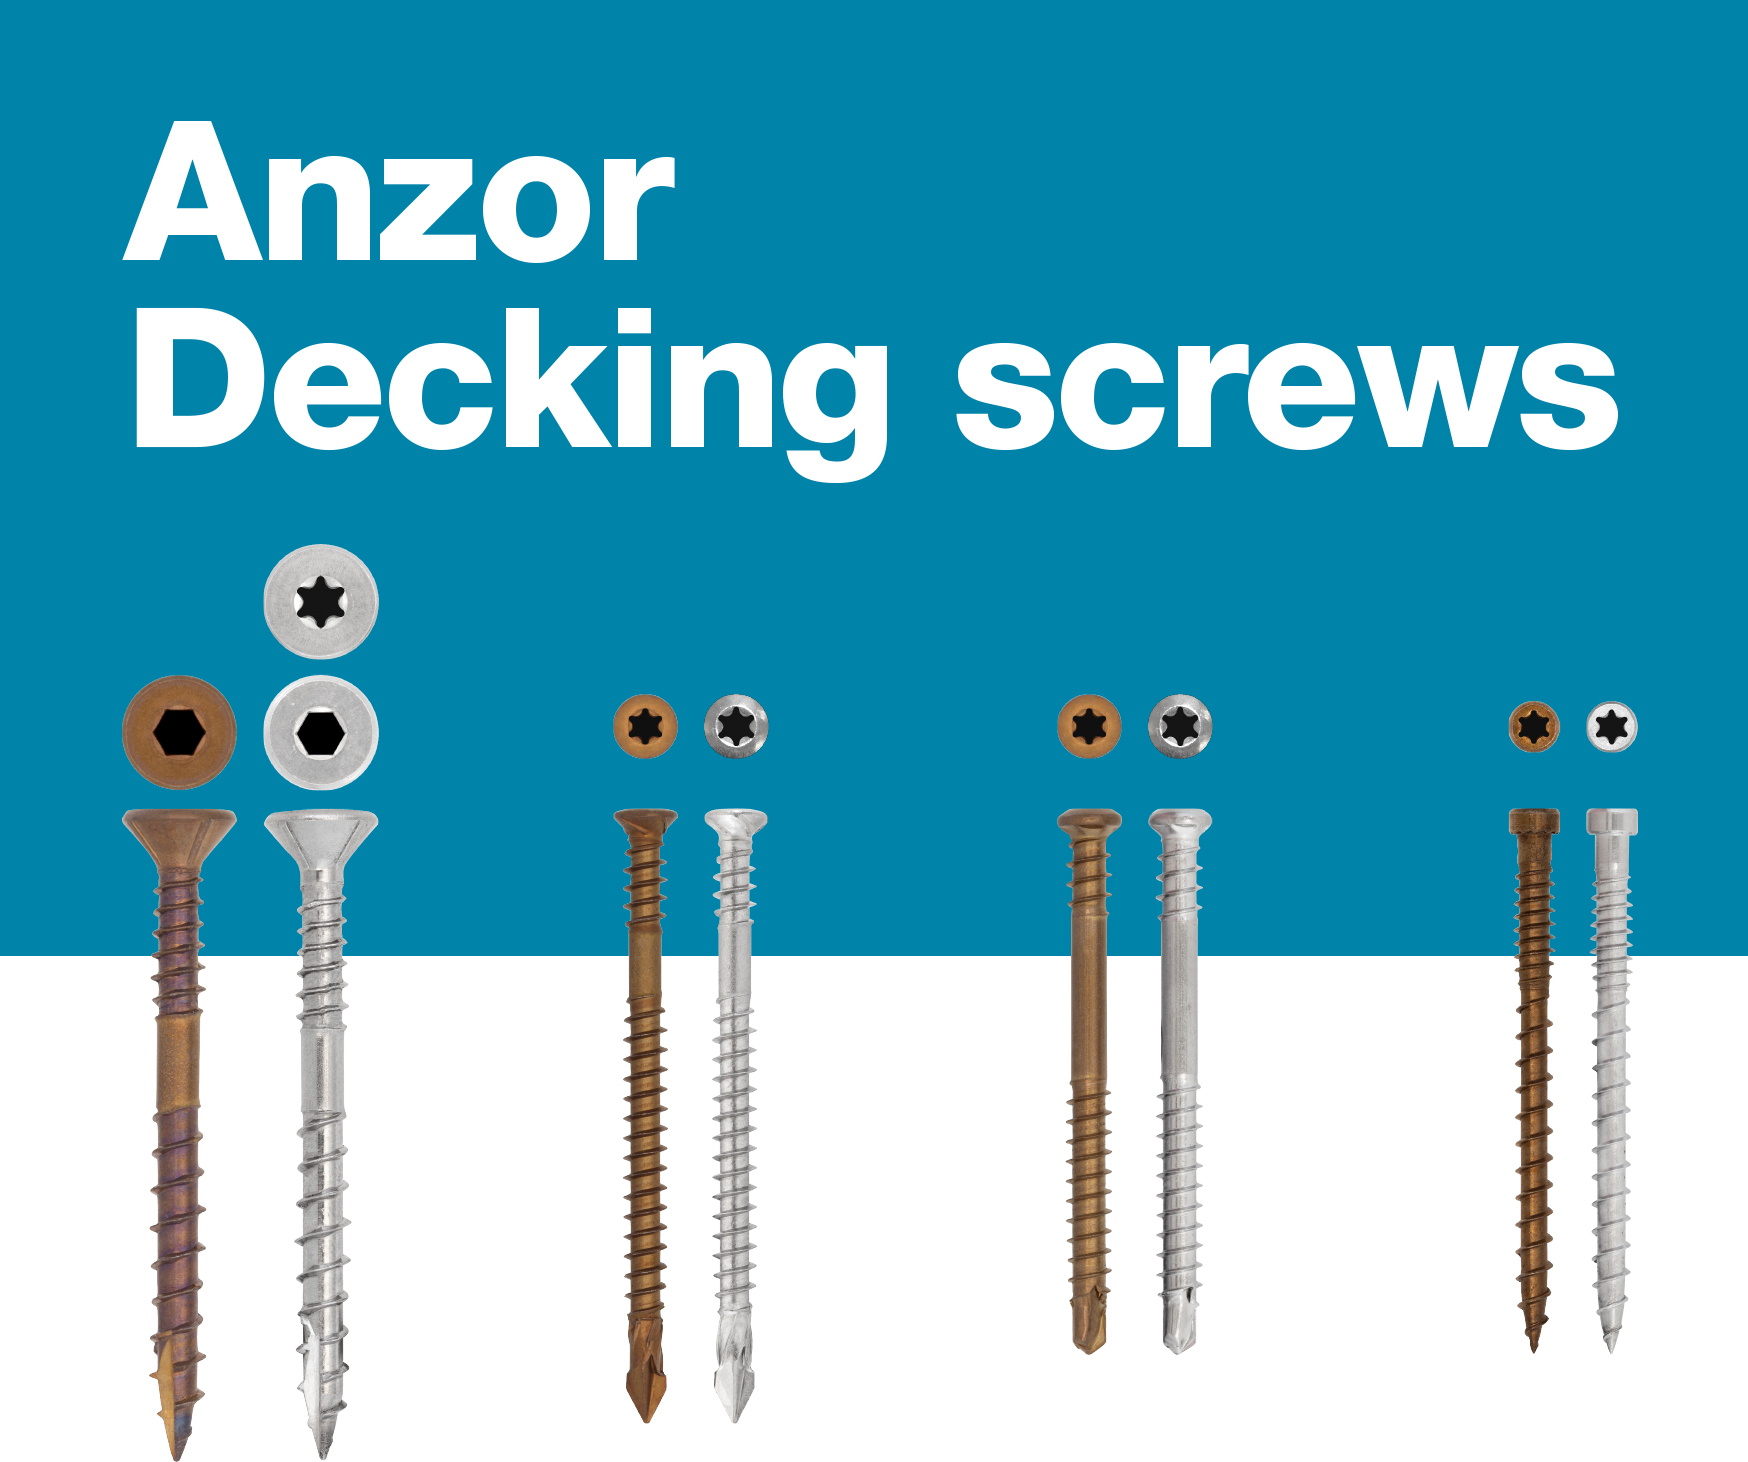 Nz Decking Screws. Blog. A5